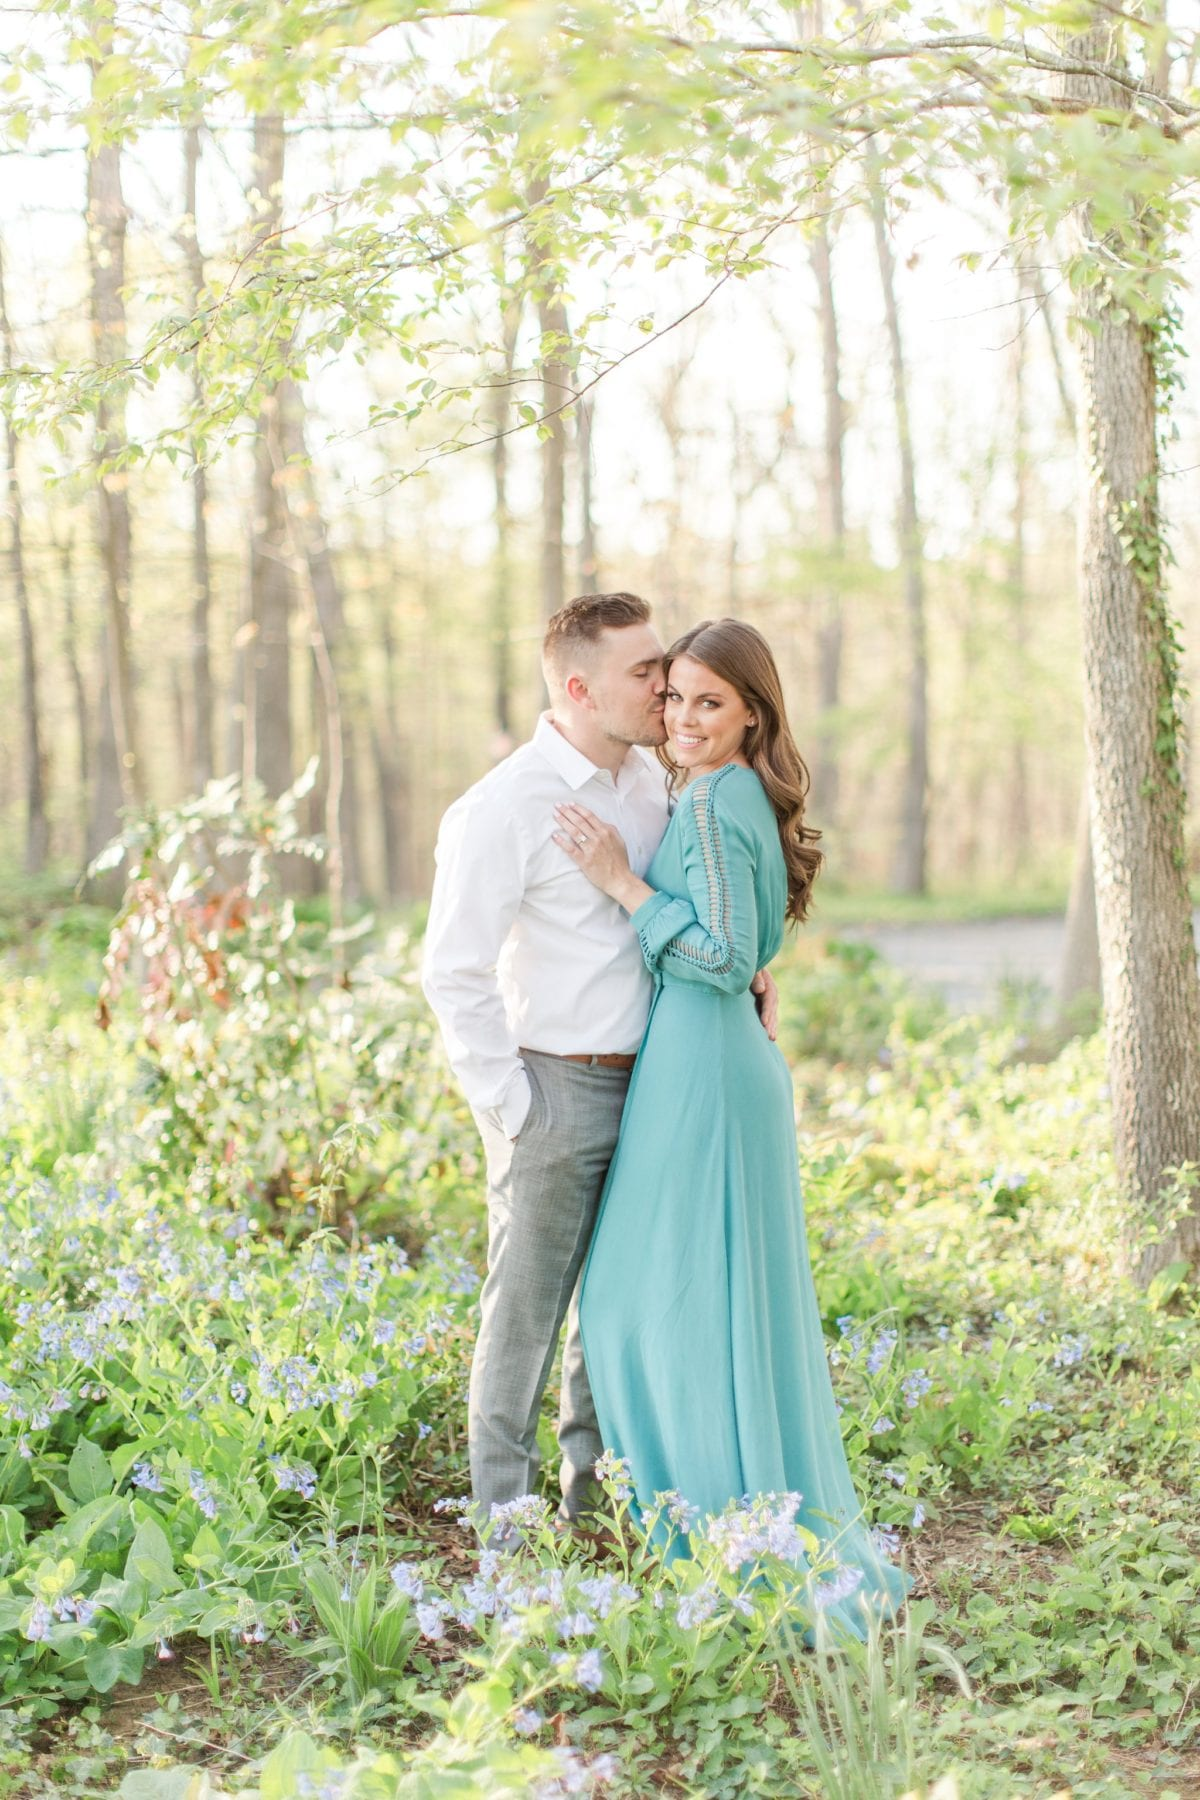 Goodstone Inn Engagement Session Virginia Wedding Photographer Megan Kelsey Photography-168.jpg